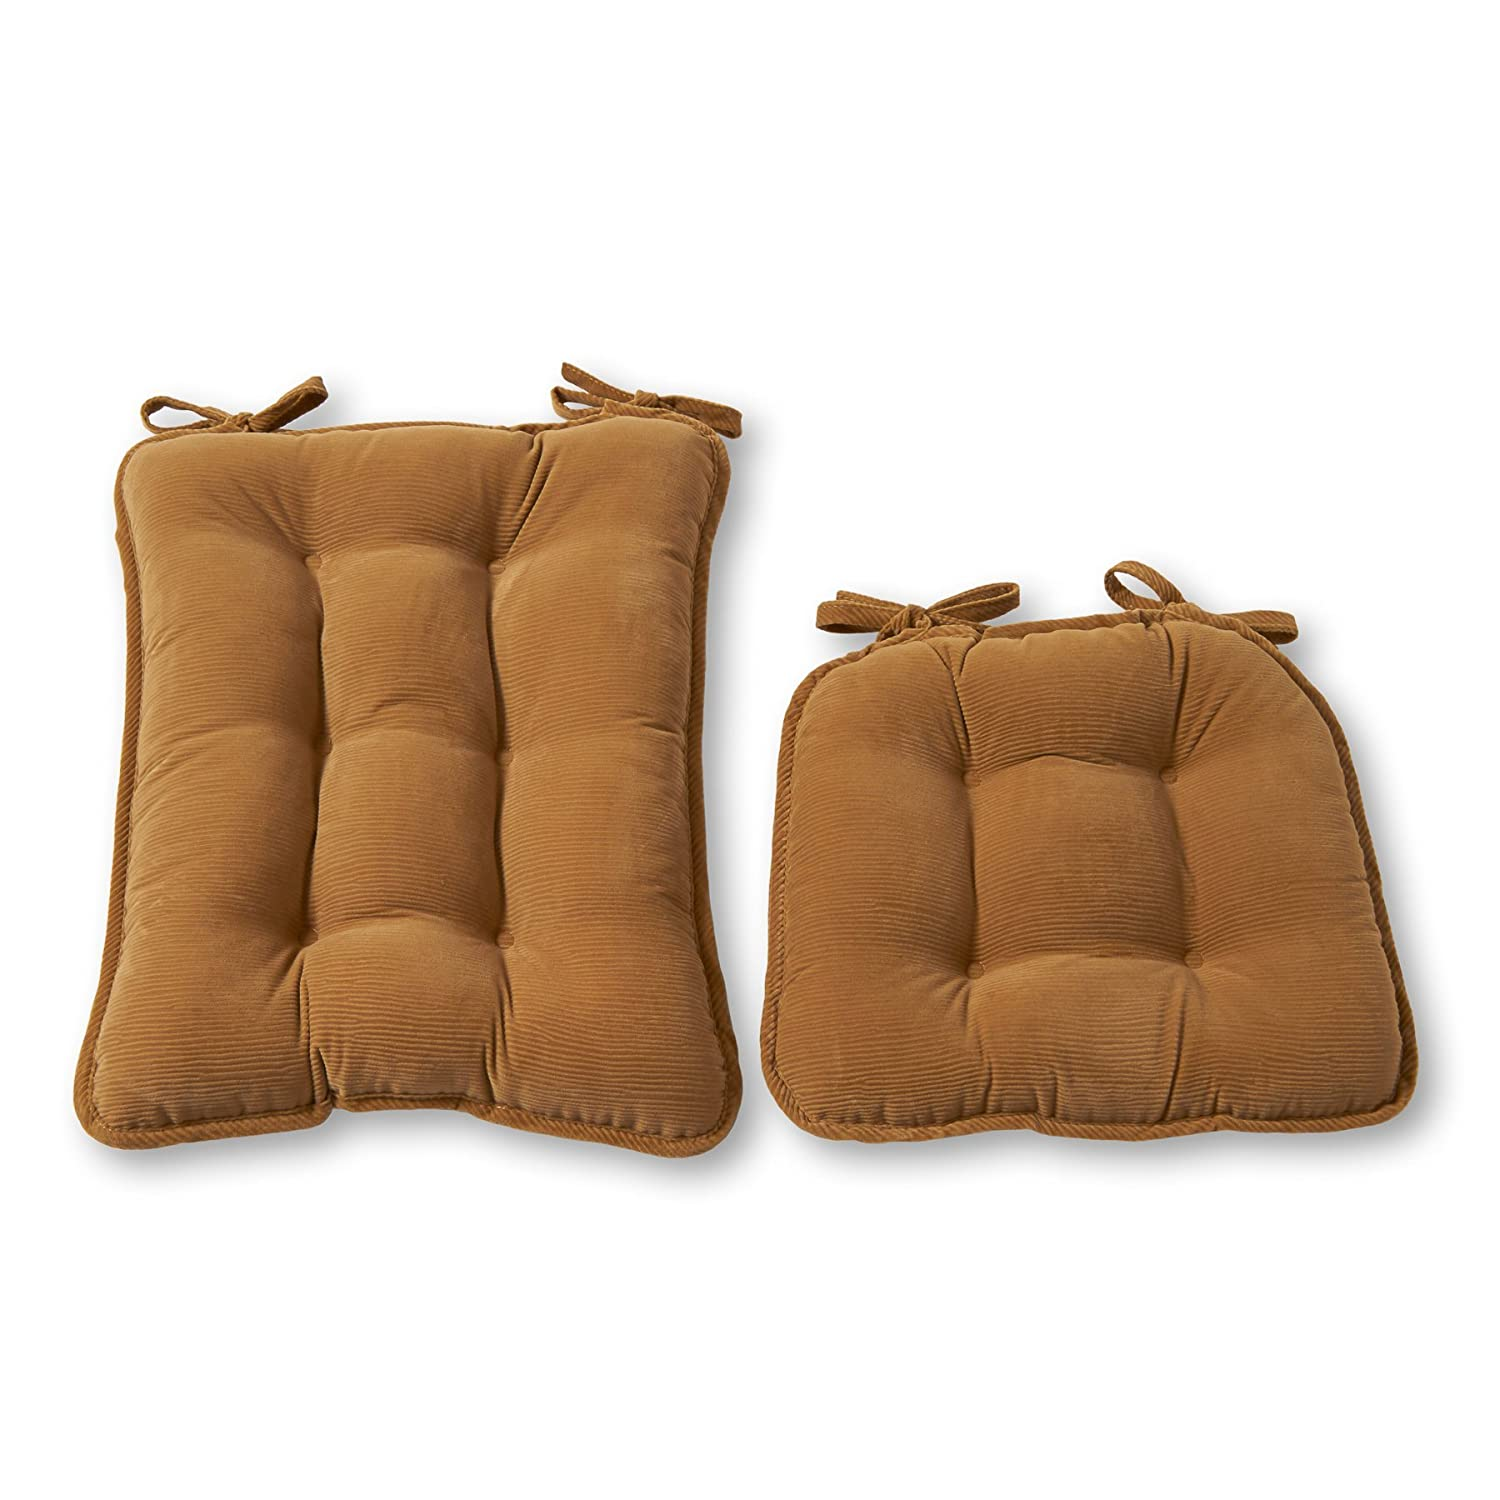 Superior Amazon.com: Greendale Home Fashions Standard Rocking Chair Cushion Set   Cherokee Solid, Sage: Home U0026 Kitchen